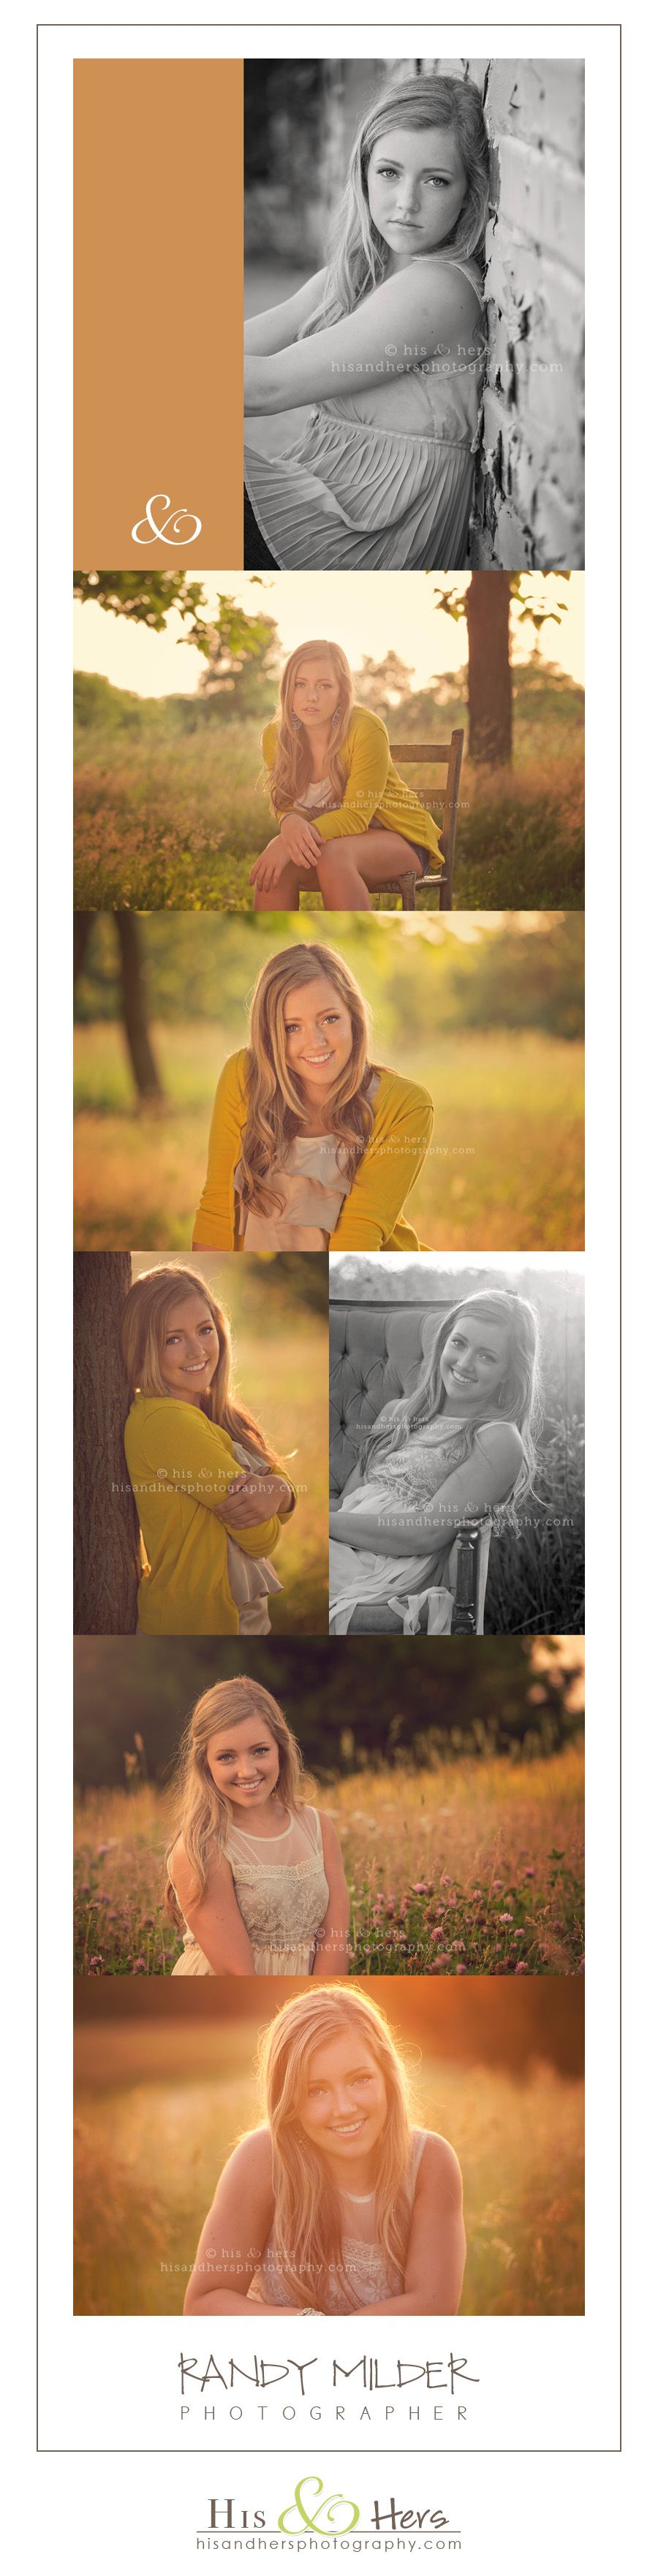 iowa senior portraits photographer senior pictures des moines iowa high school senior class of 2014 photographer